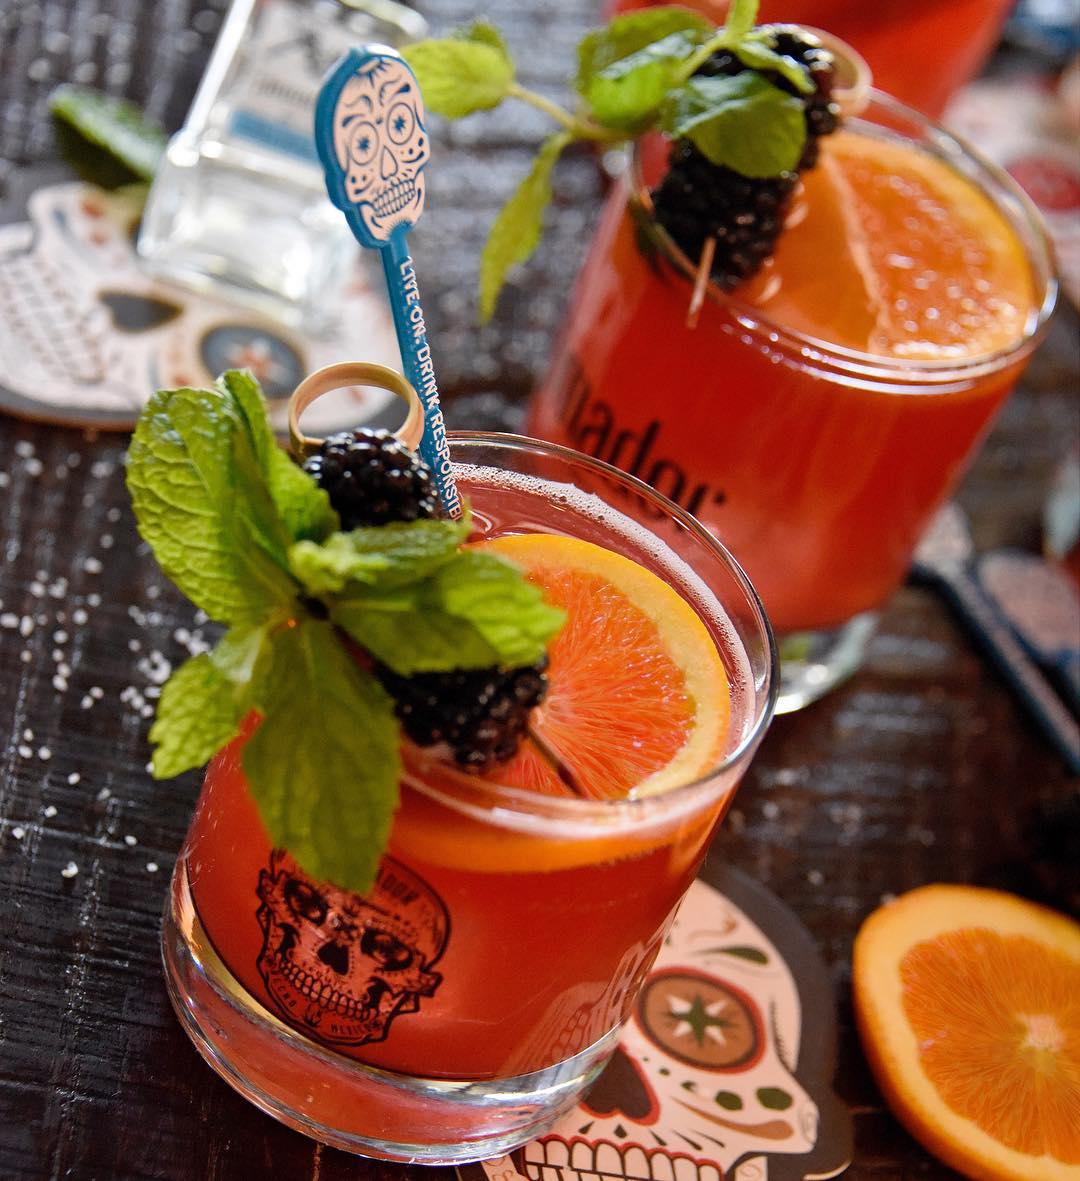 Fun Photos From el Jimador Tequila Feature Royer Swizzle Sticks!